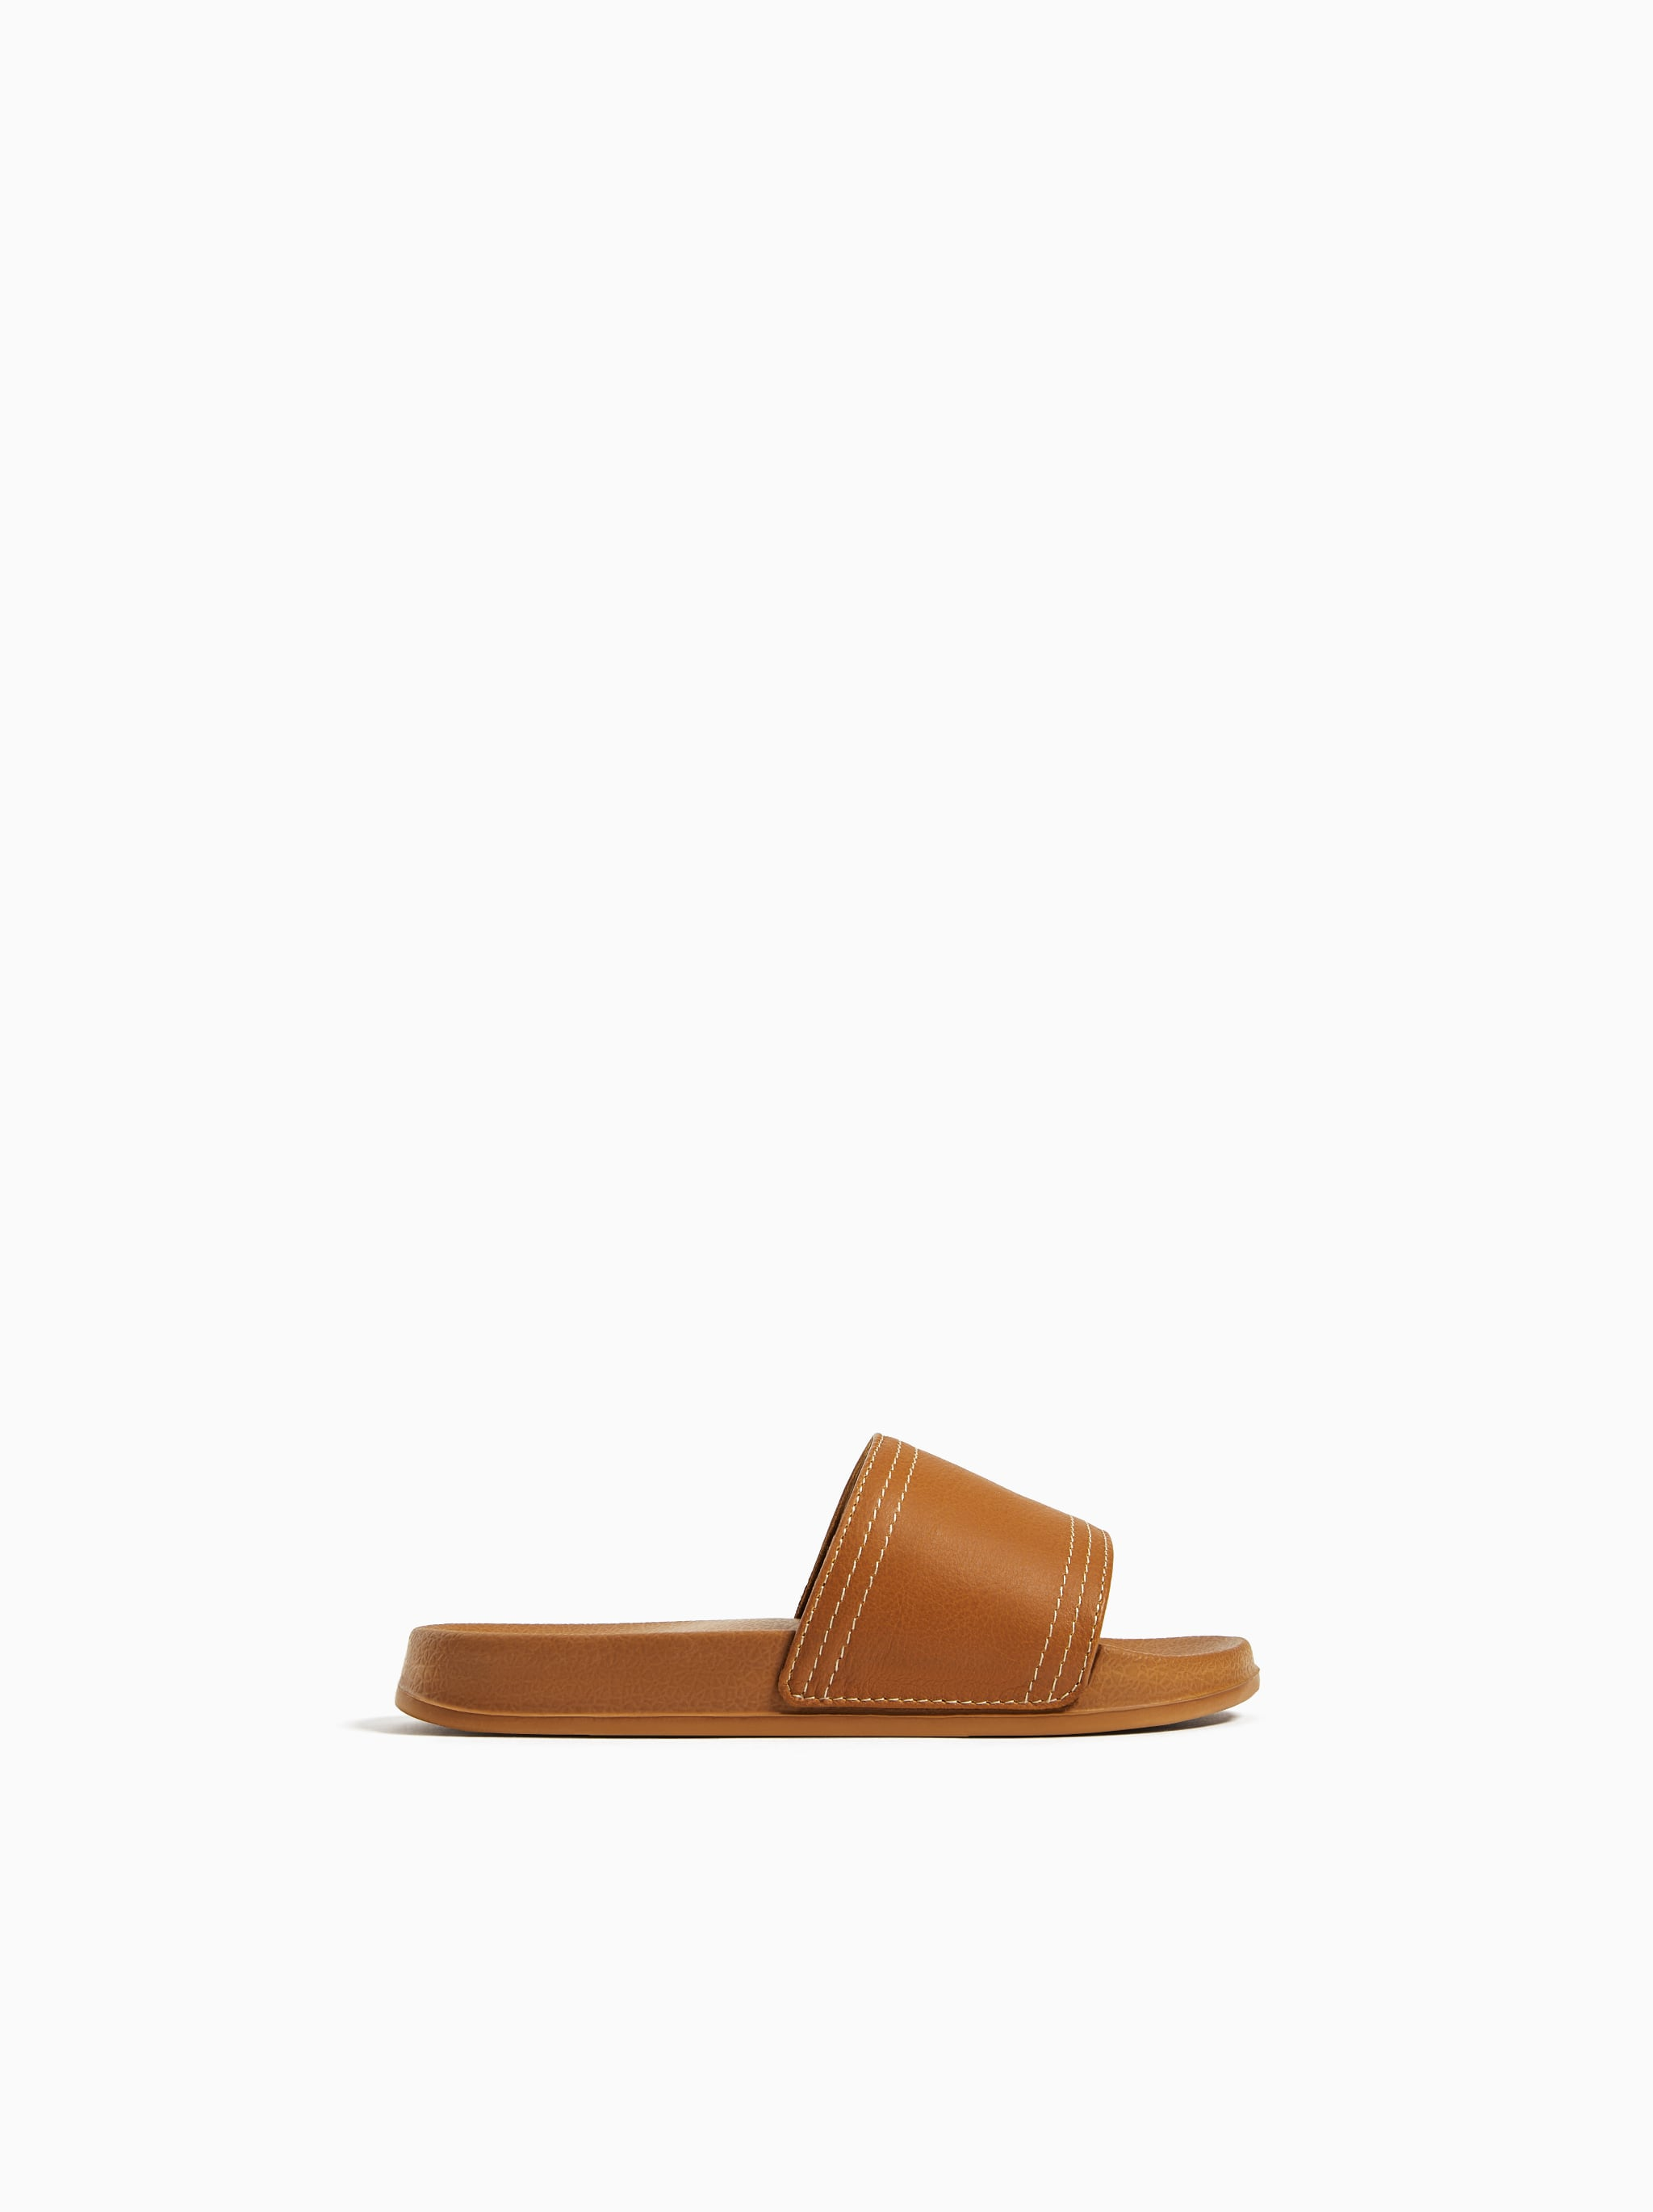 check out 20680 c53f7 Zara LEATHER SLIDE SANDALS